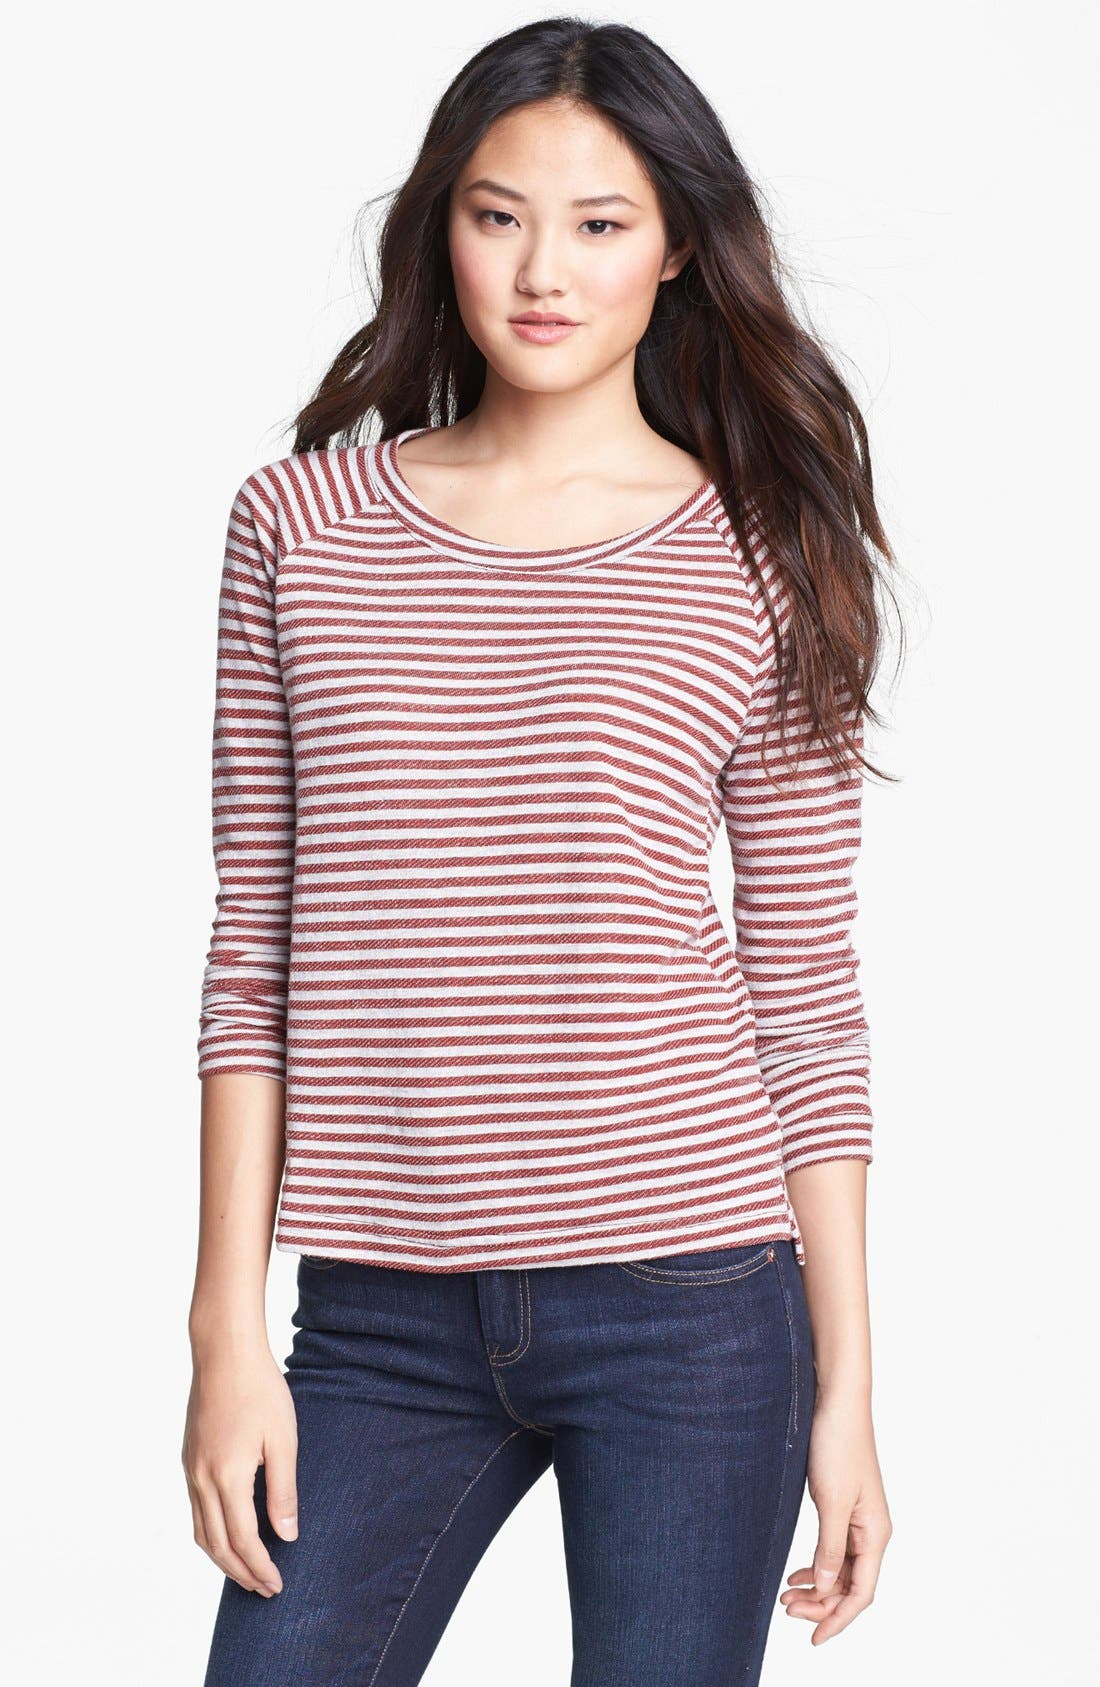 Alternate Image 1 Selected - KUT from the Kloth Stripe Tee